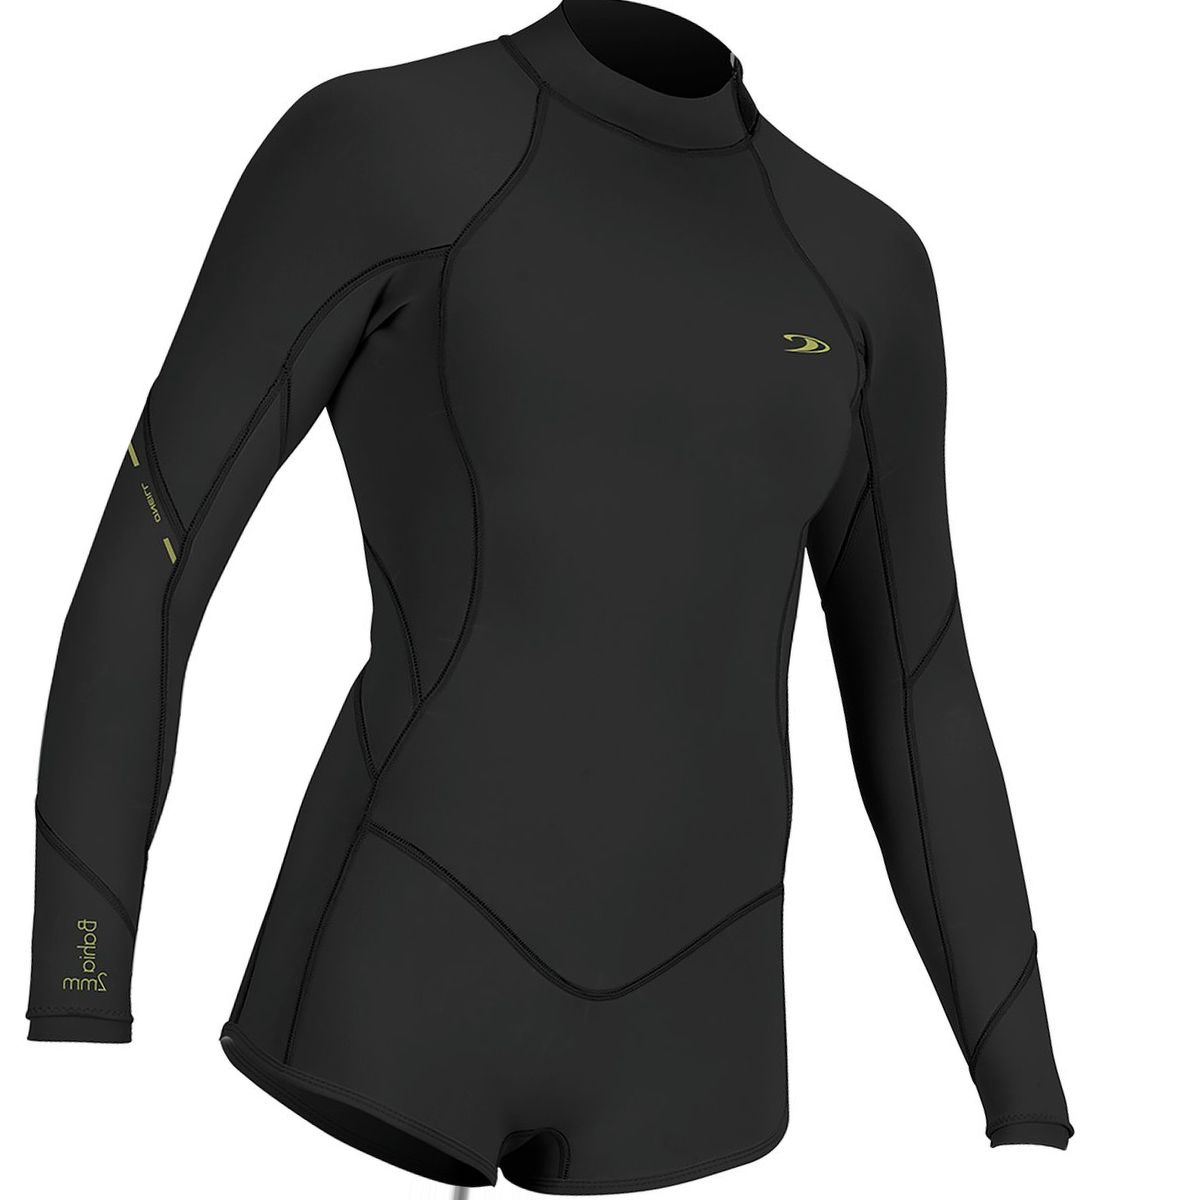 O'Neill Bahia Long-Sleeve Short Spring Wetsuit - Women's